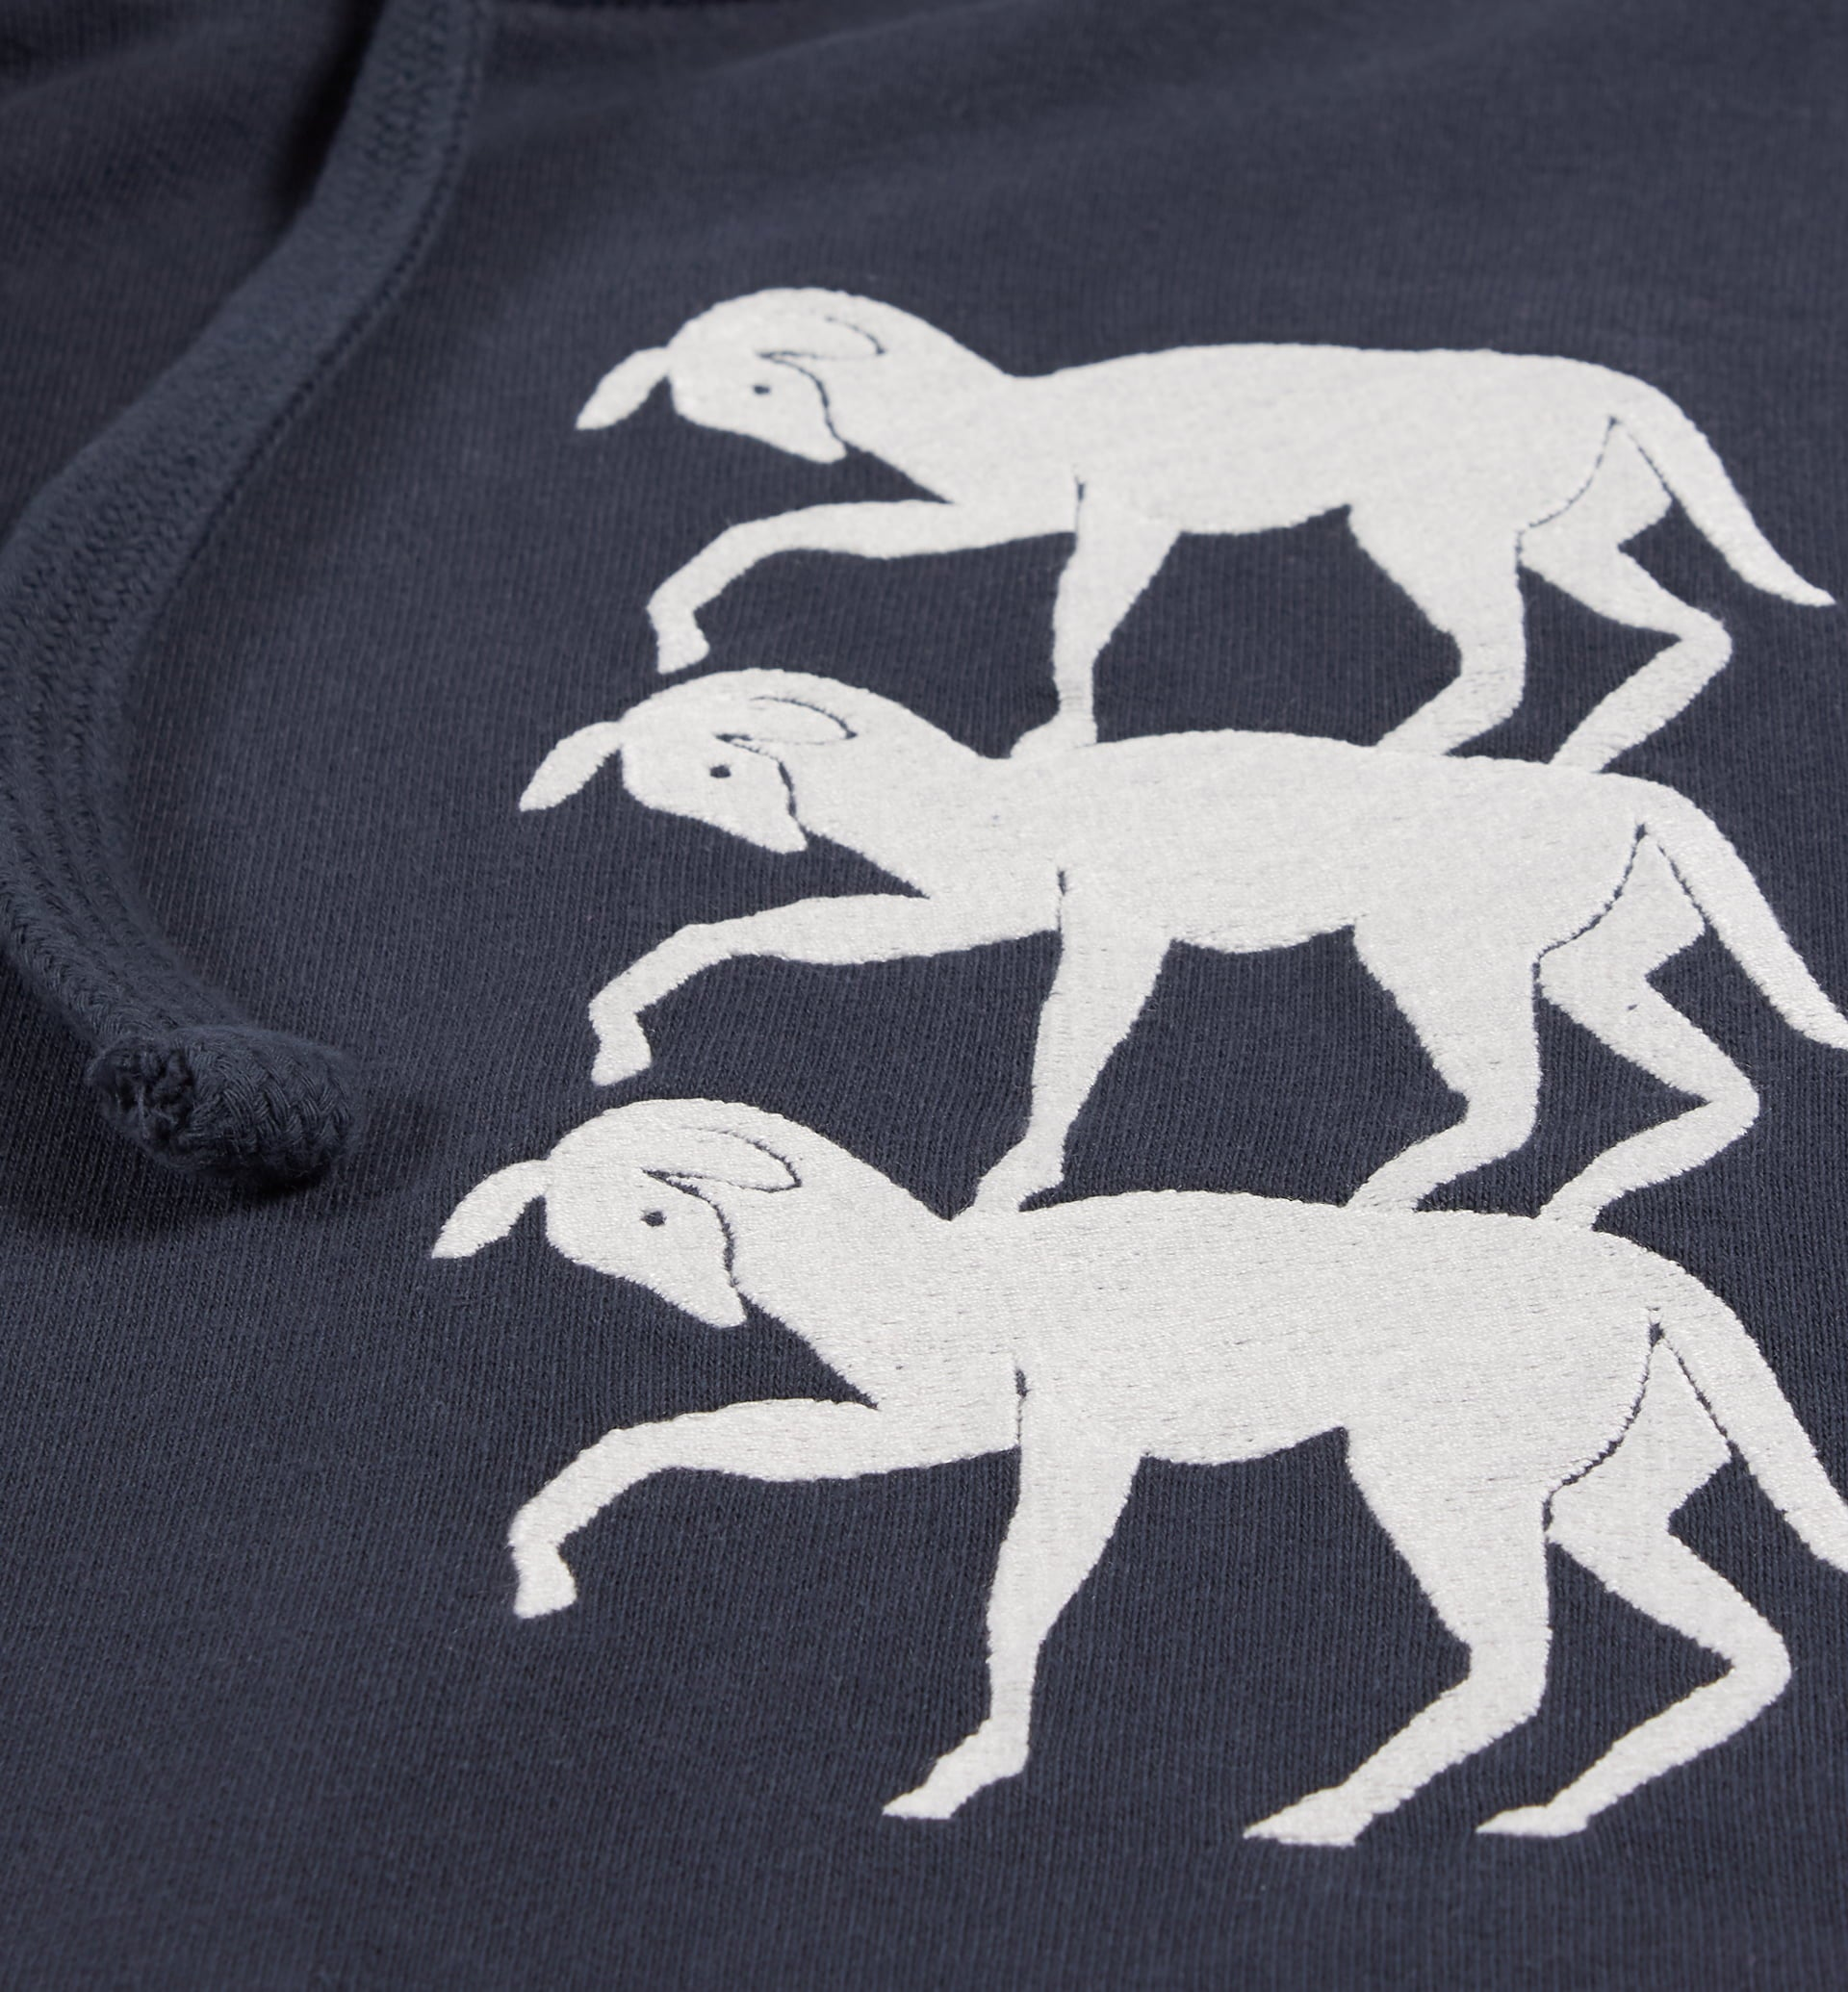 Parra - stacked goats hooded sweatshirt